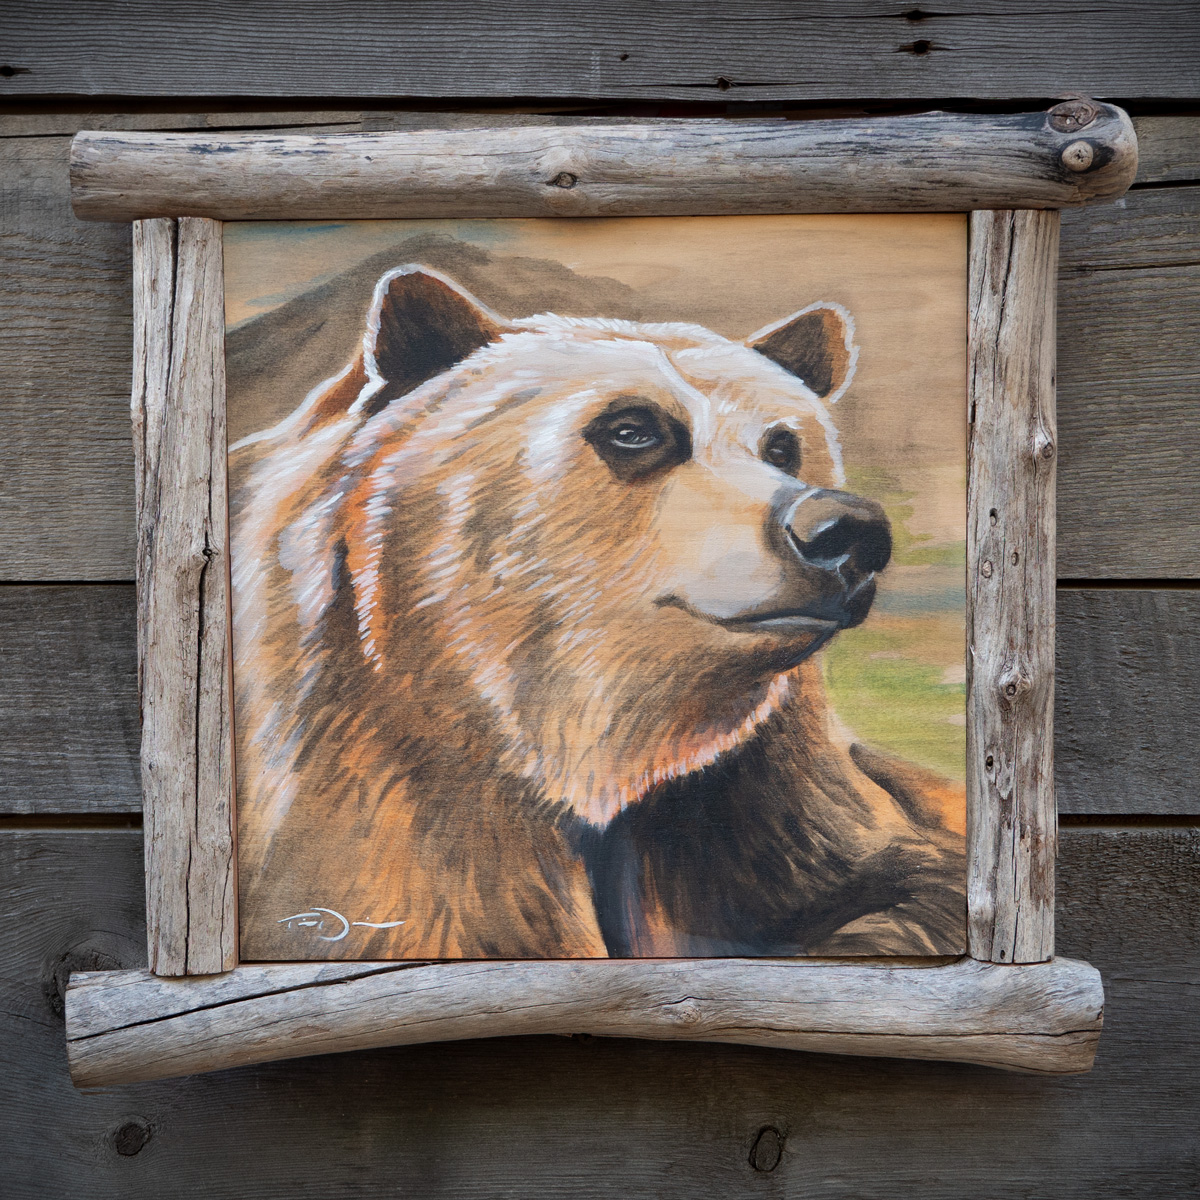 Handsome Bear - a grizzly bear original oil painting by Timothy Davison of the Davison Art Company